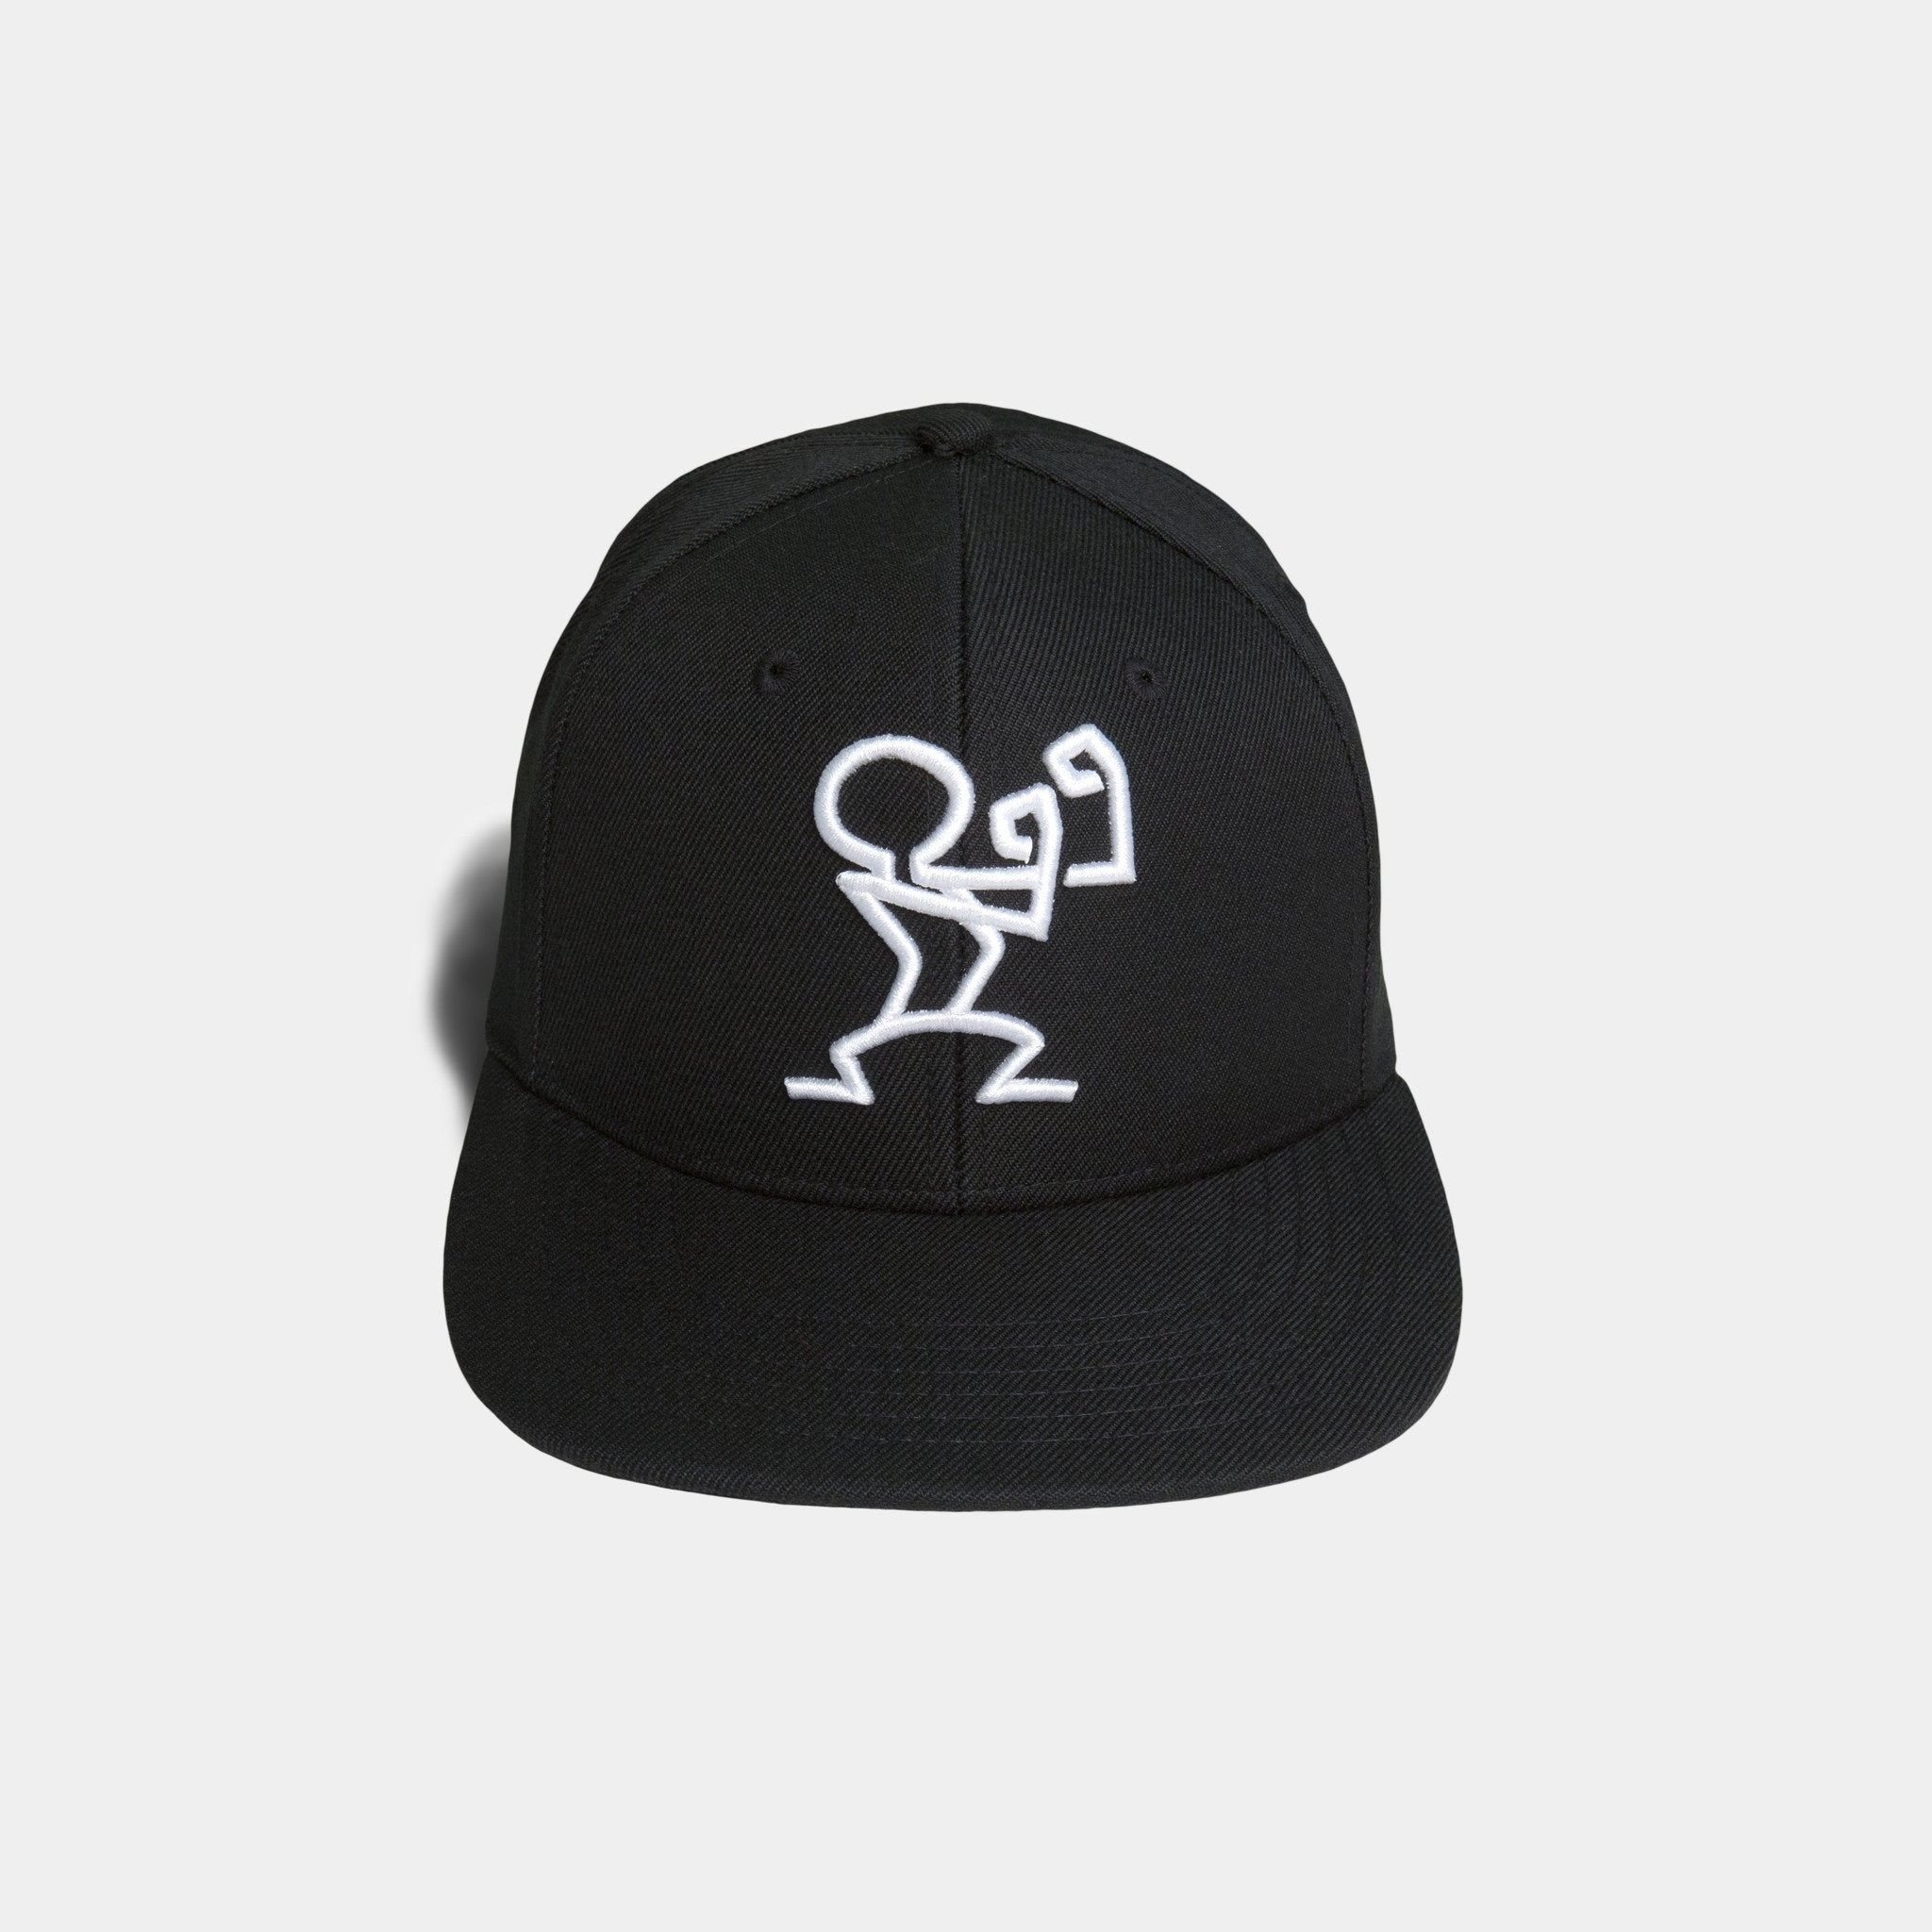 18f82831d0c Hats - Dethrone